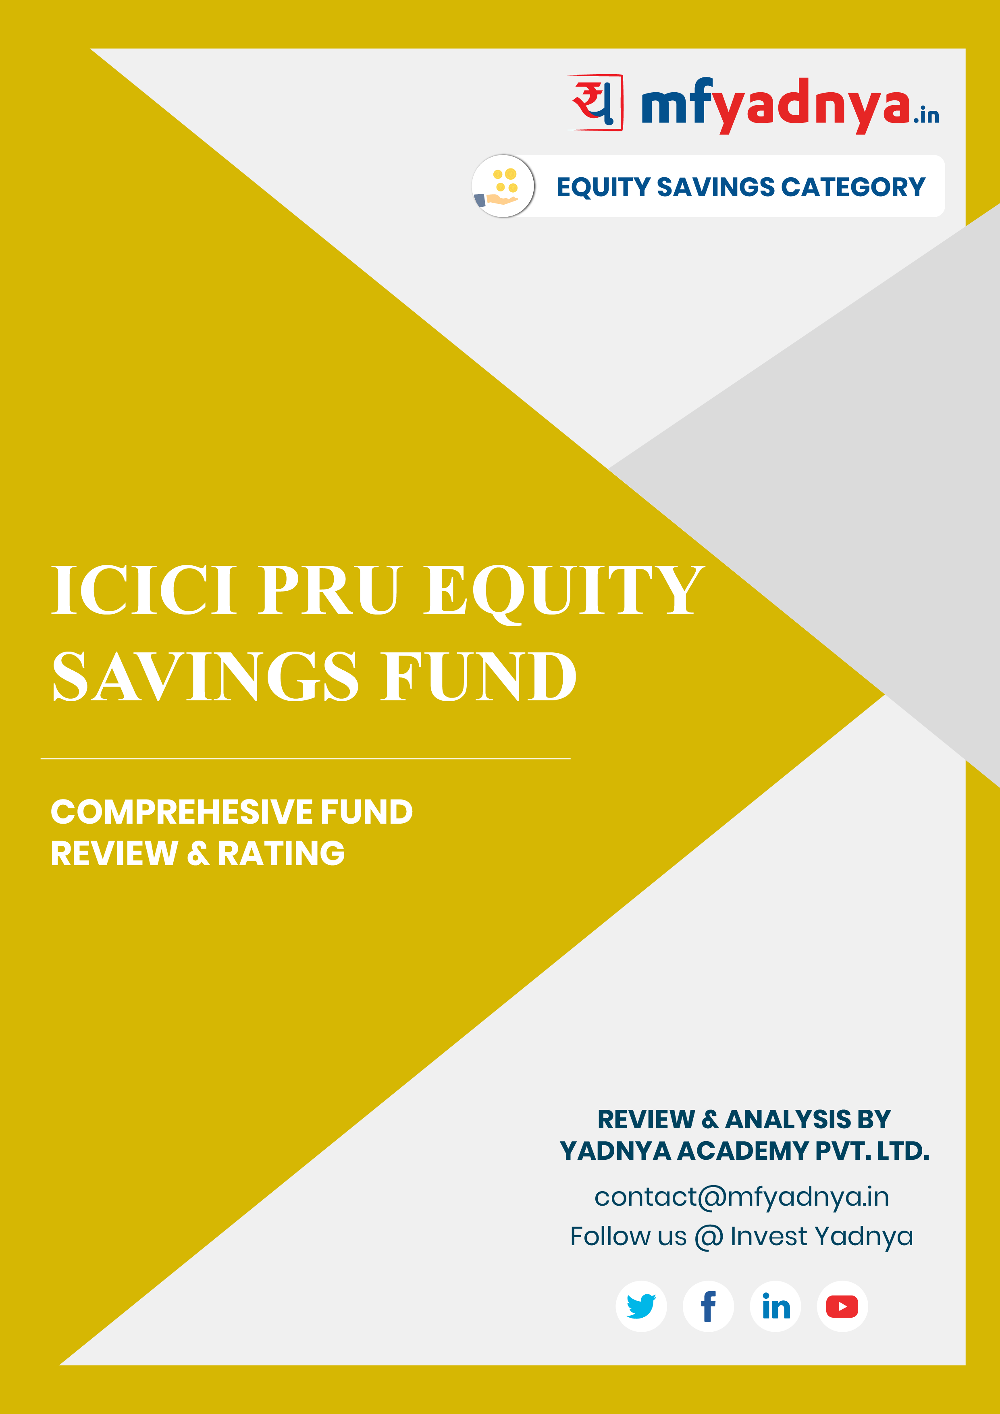 This e-book offers a comprehensive mutual fund review of ICICI Pru Equity Savings Fund. It reviews the fund's return, ratio, allocation etc. ✔ Detailed Mutual Fund Analysis ✔ Latest Research Reports